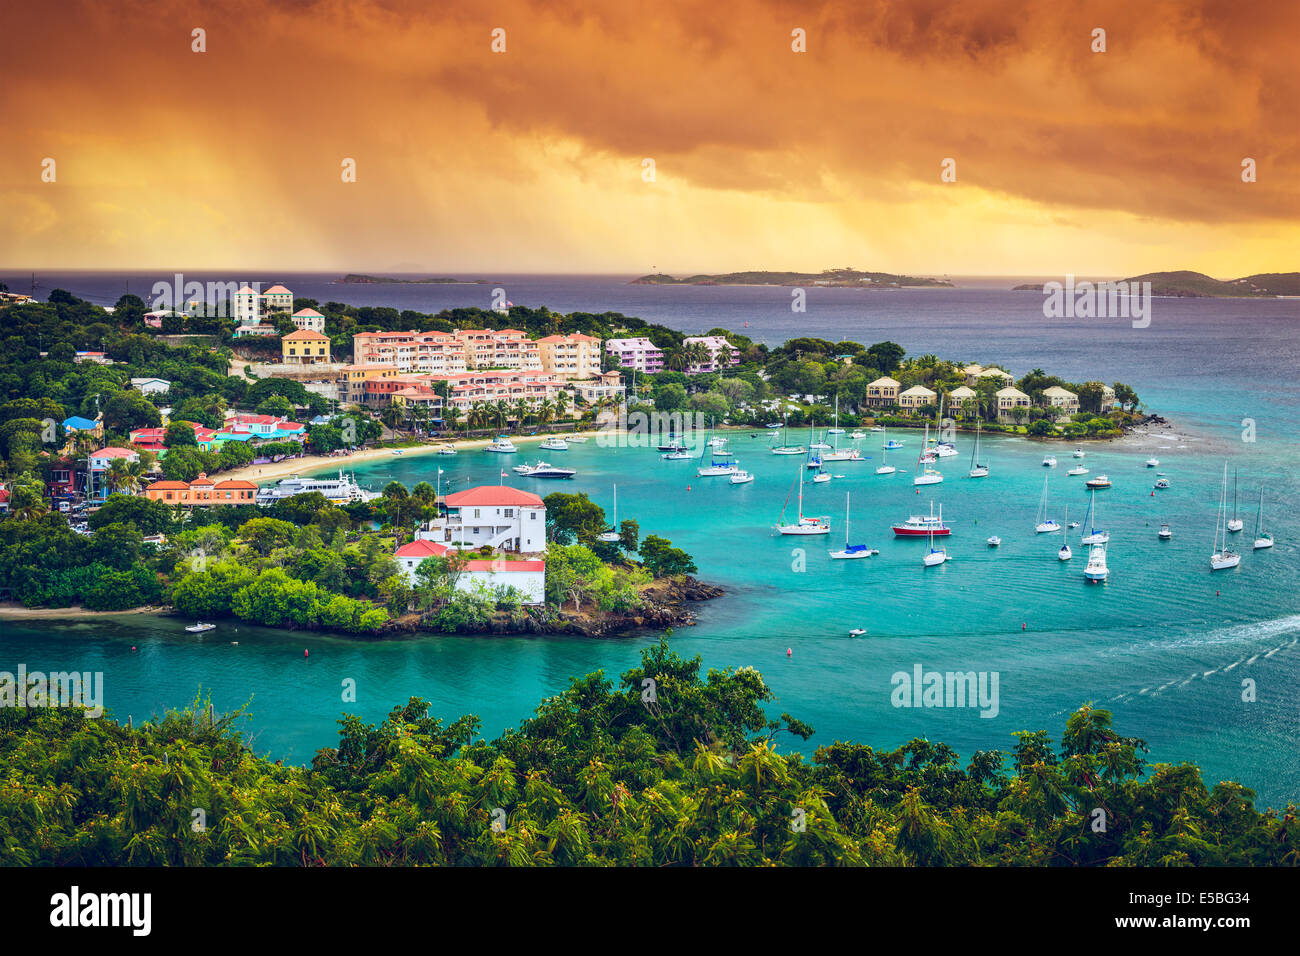 St. John, US Virgin Island at Cruz Bay. - Stock Image